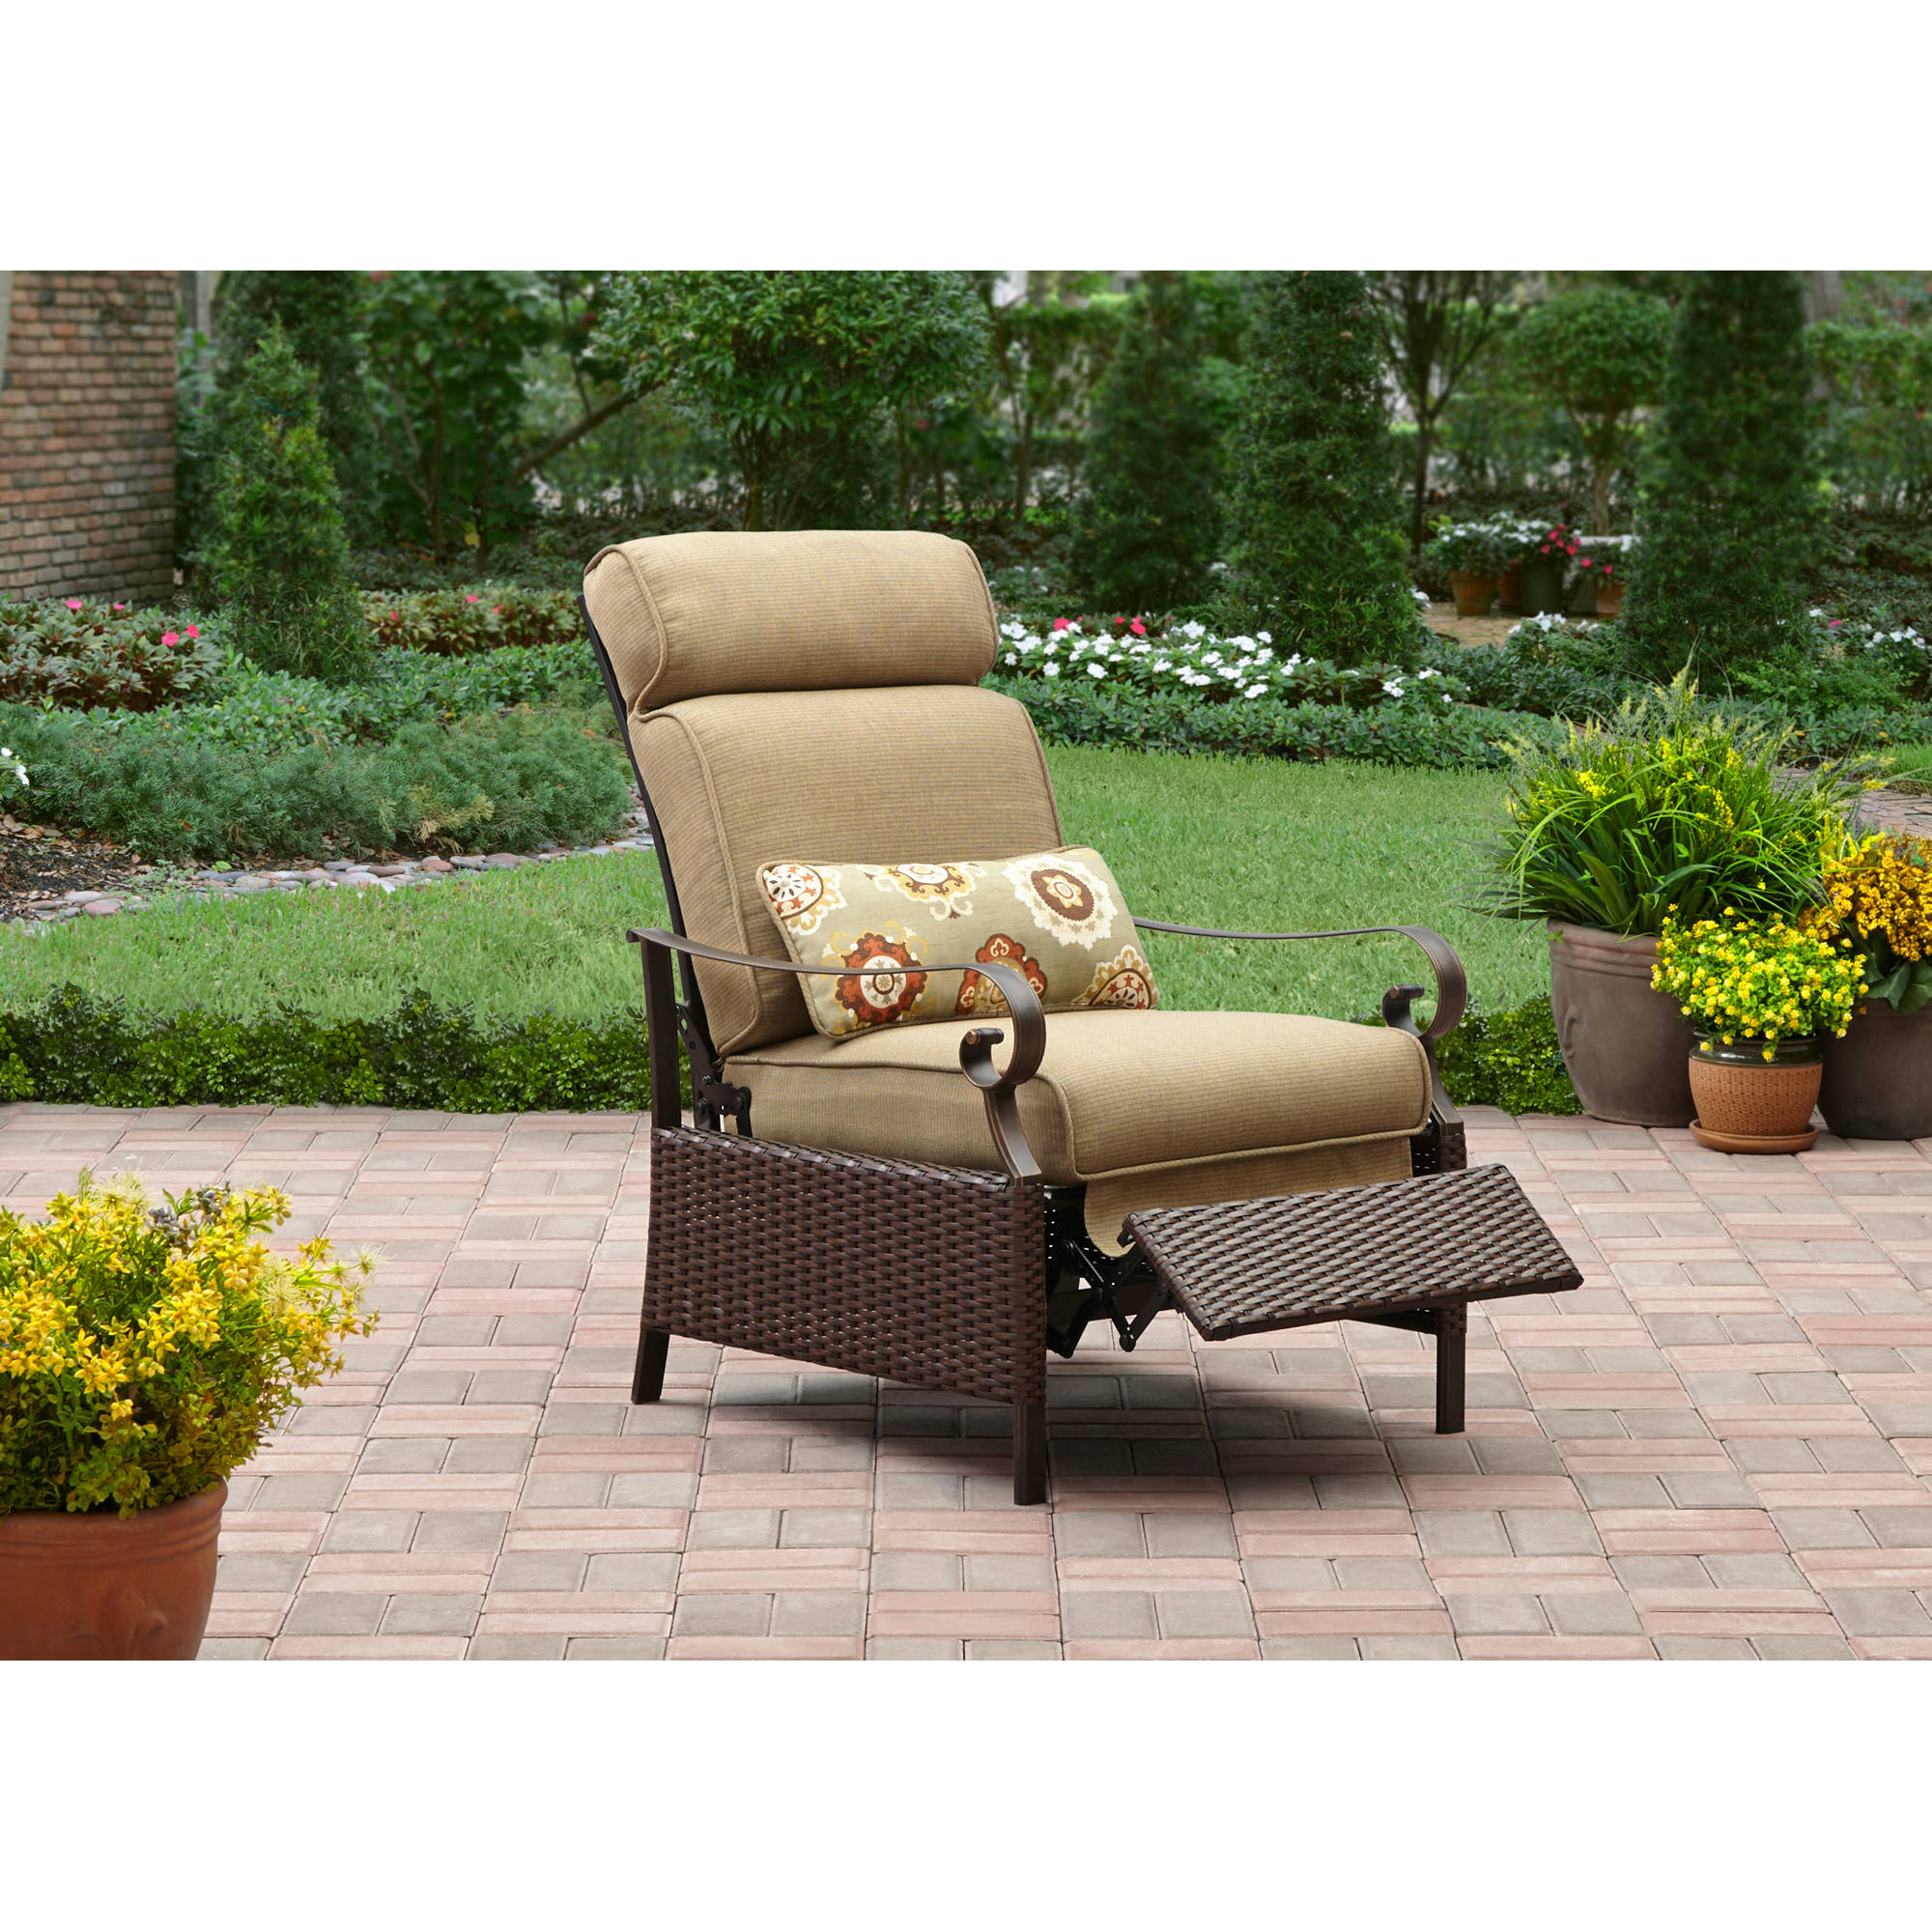 Better Homes and Gardens Riverwood Recliner Tan  sc 1 st  Walmart & Wicker Recliners islam-shia.org